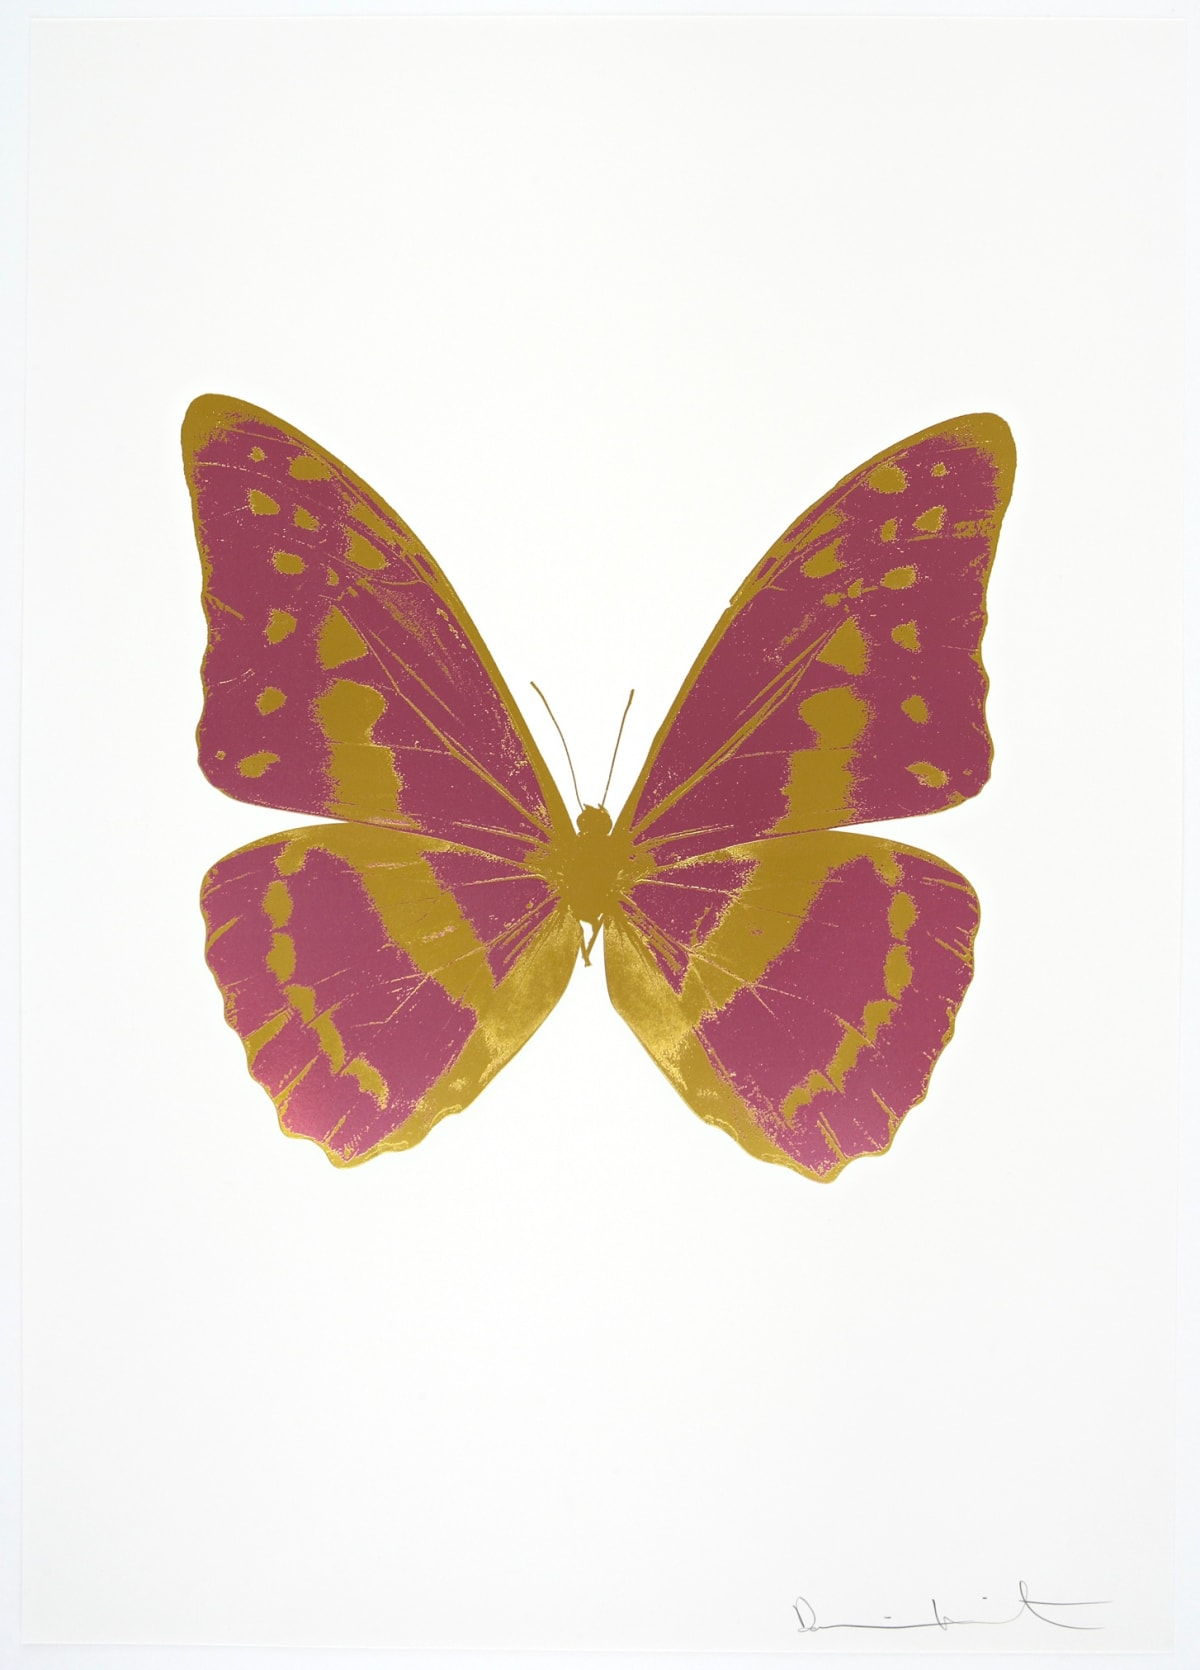 Damien Hirst The Souls III - Loganberry Pink/Oriental Gold/Oriental Gold, 2010 2 colour foil block on 300gsm Arches 88 archival paper. Signed and numbered. Published by Paul Stolper and Other Criteria 72 x 51cm OC7924 / 660-27 Edition of 15